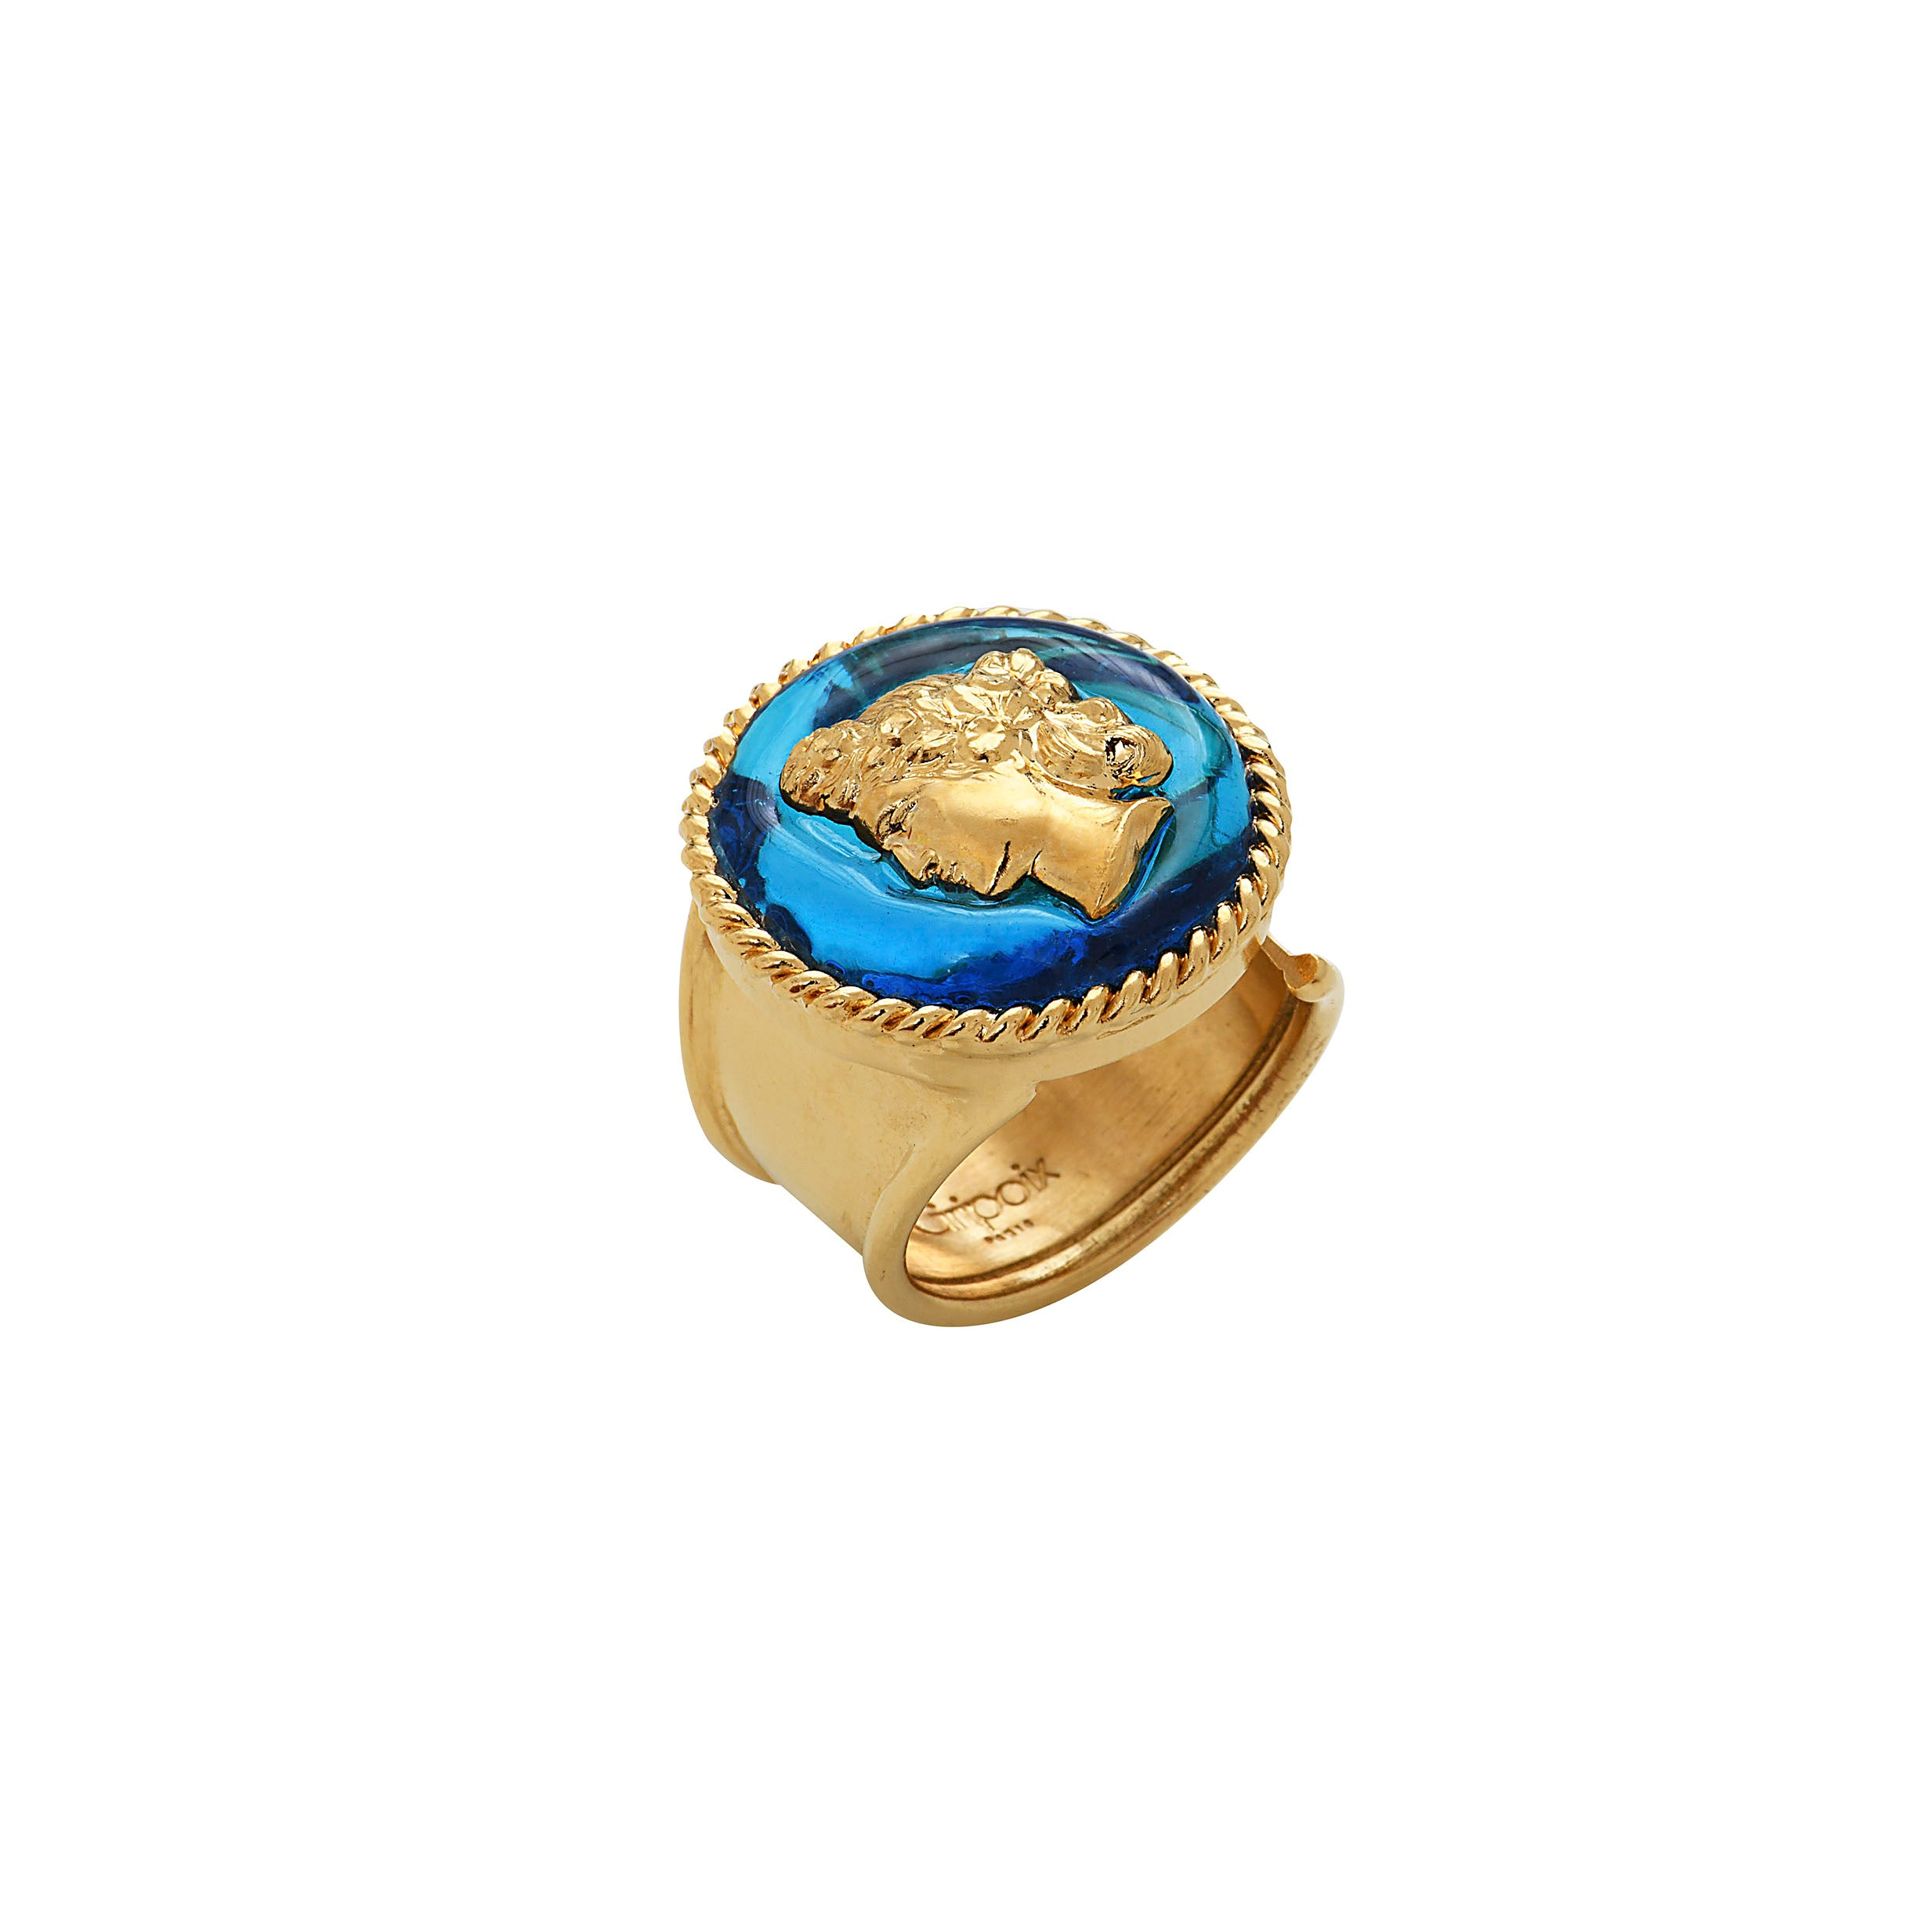 Back to Rome Adjustable Cameo Ring